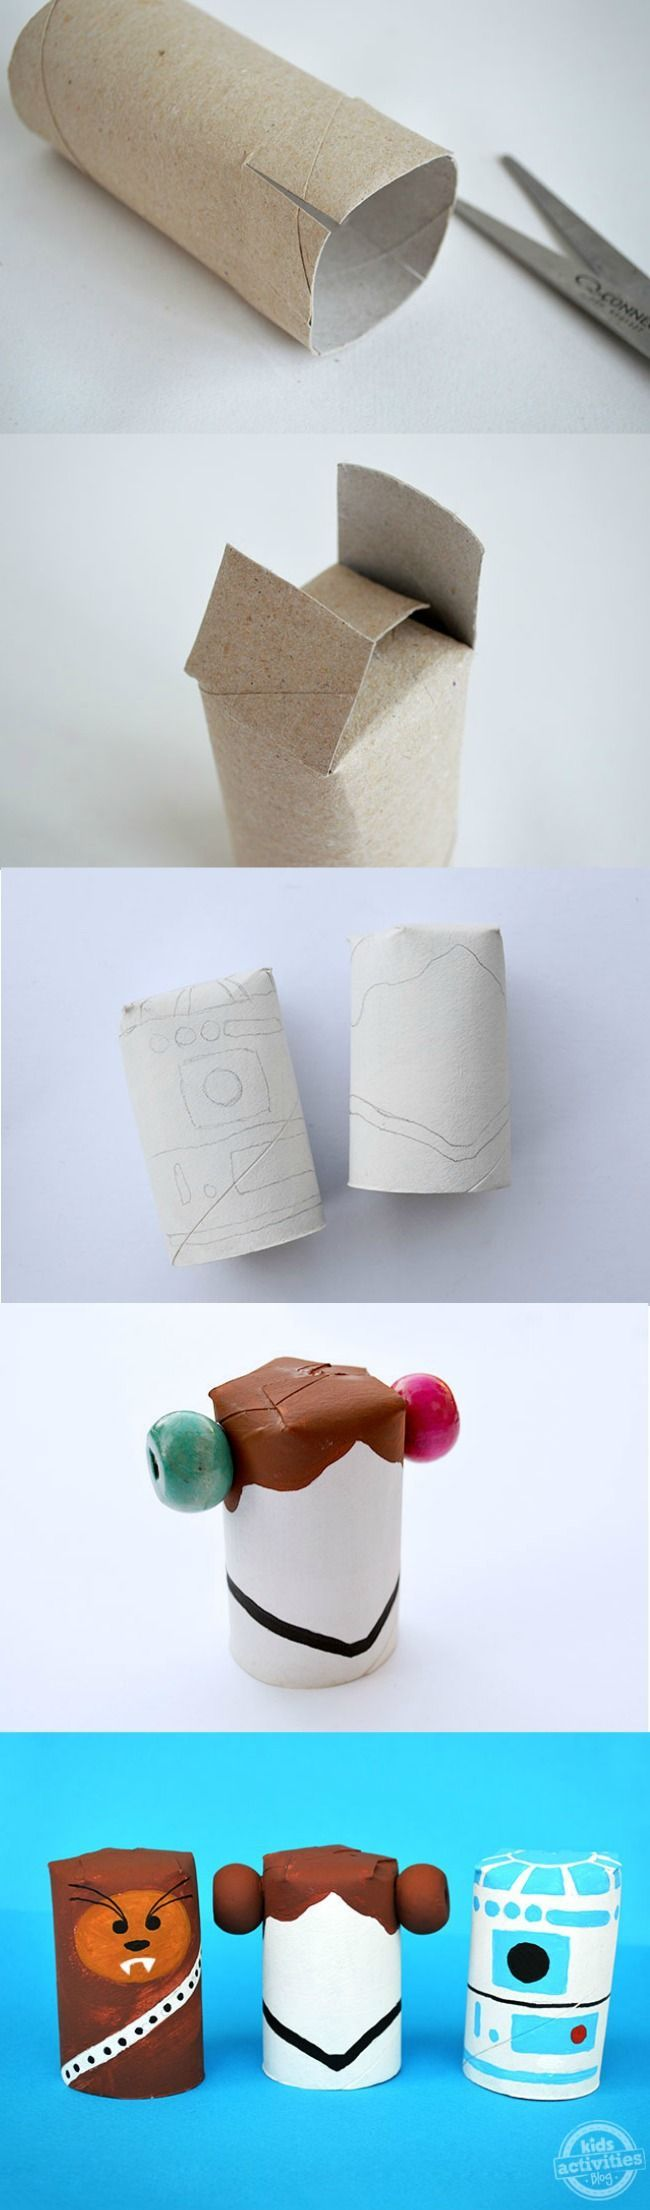 These star wars crafts made from toilet paper rolls are adorable!  Older kids will love getting to make these (and, me too!).